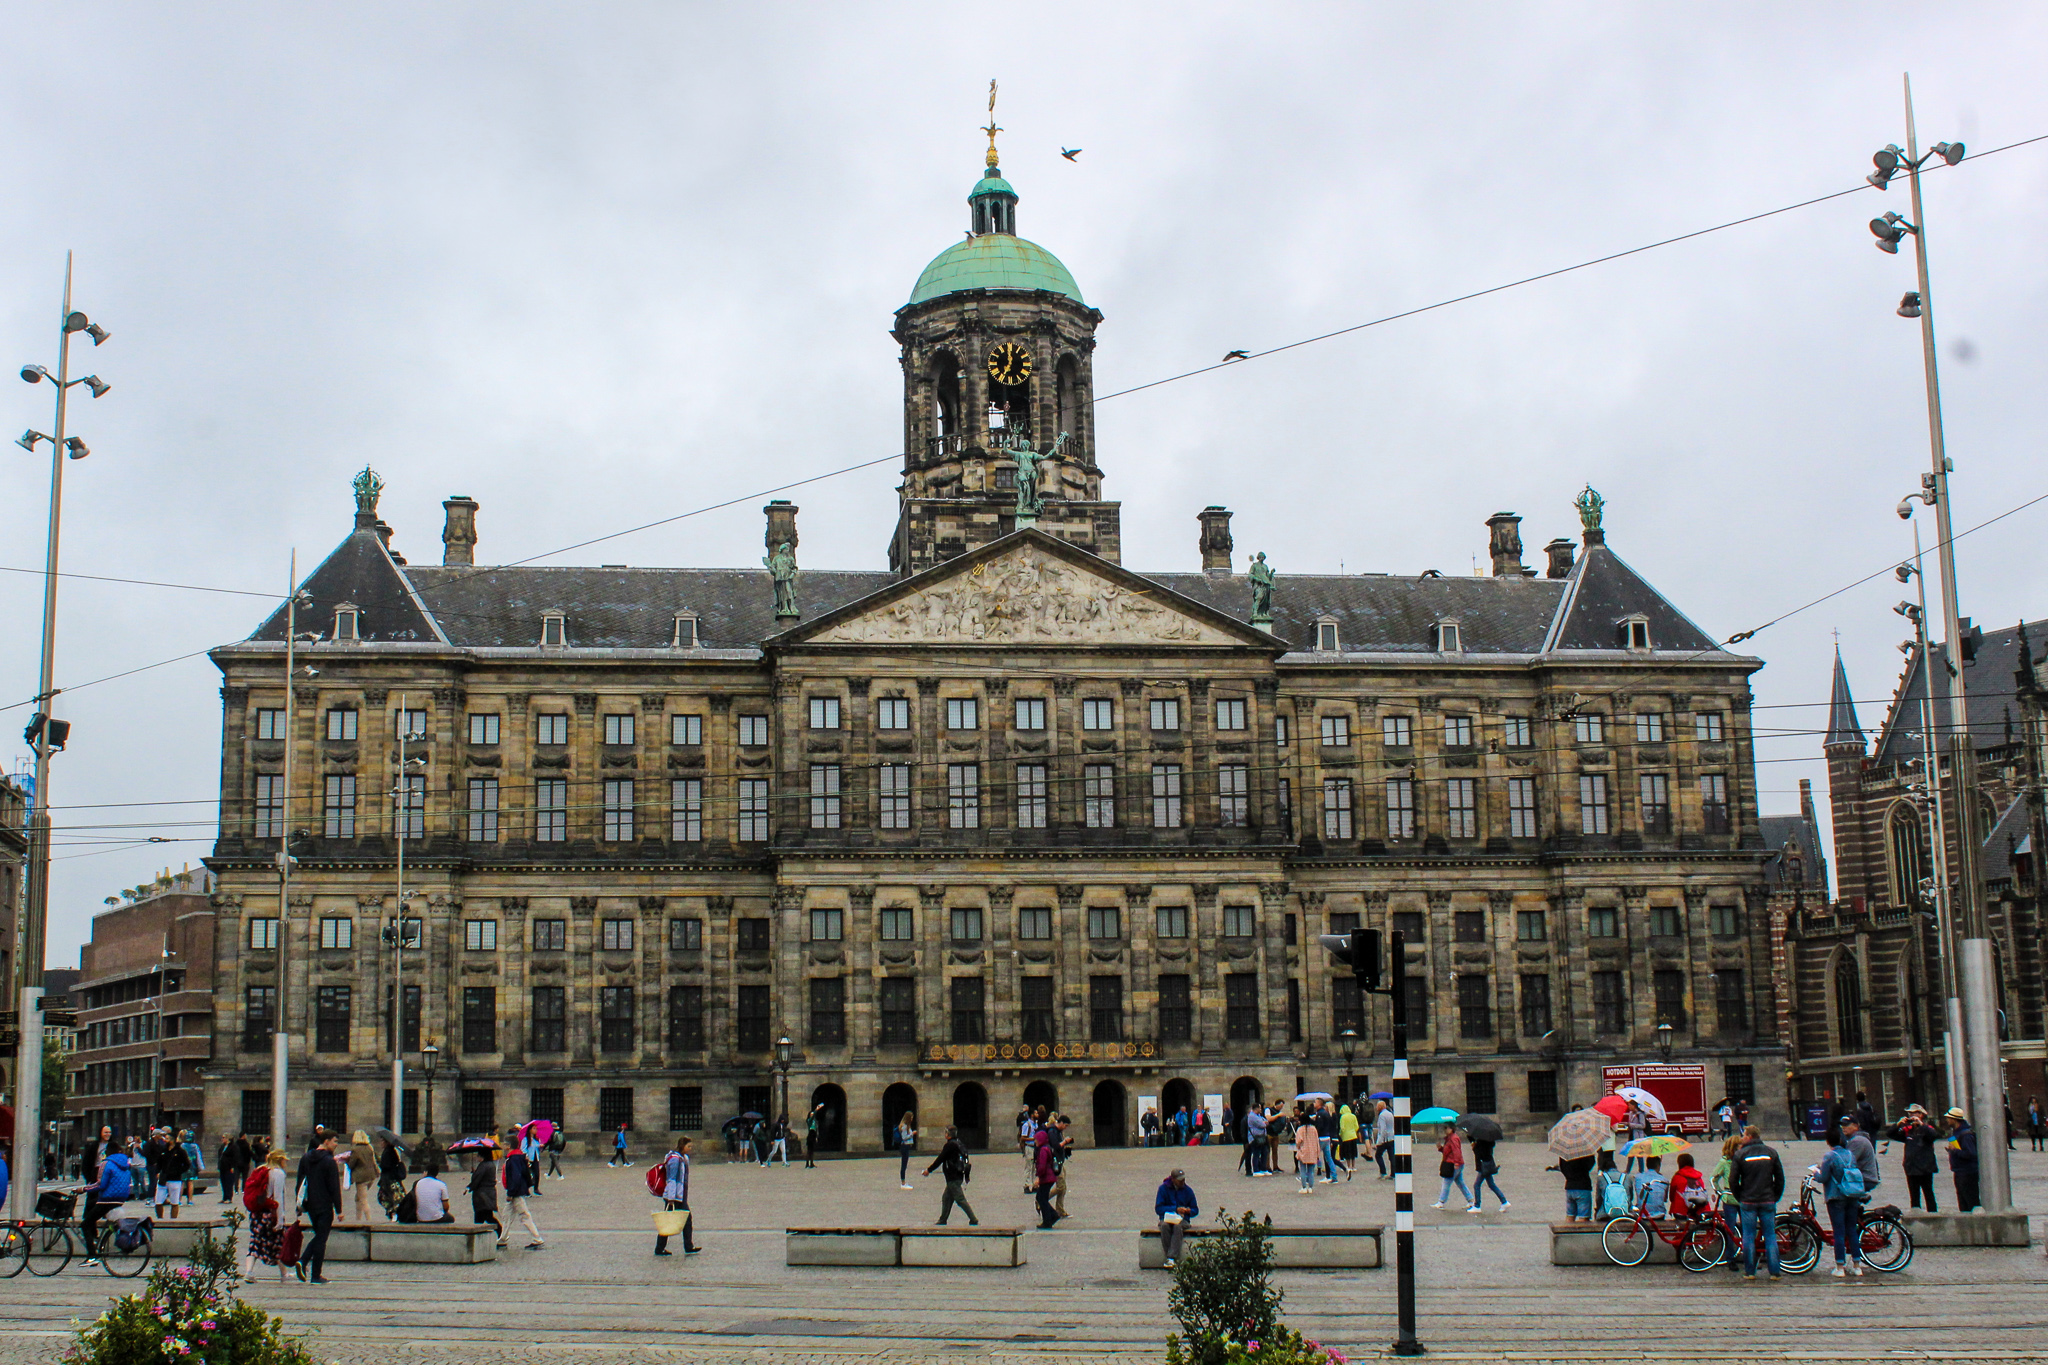 sightseeing in amsterdam in two days will take you to dam square